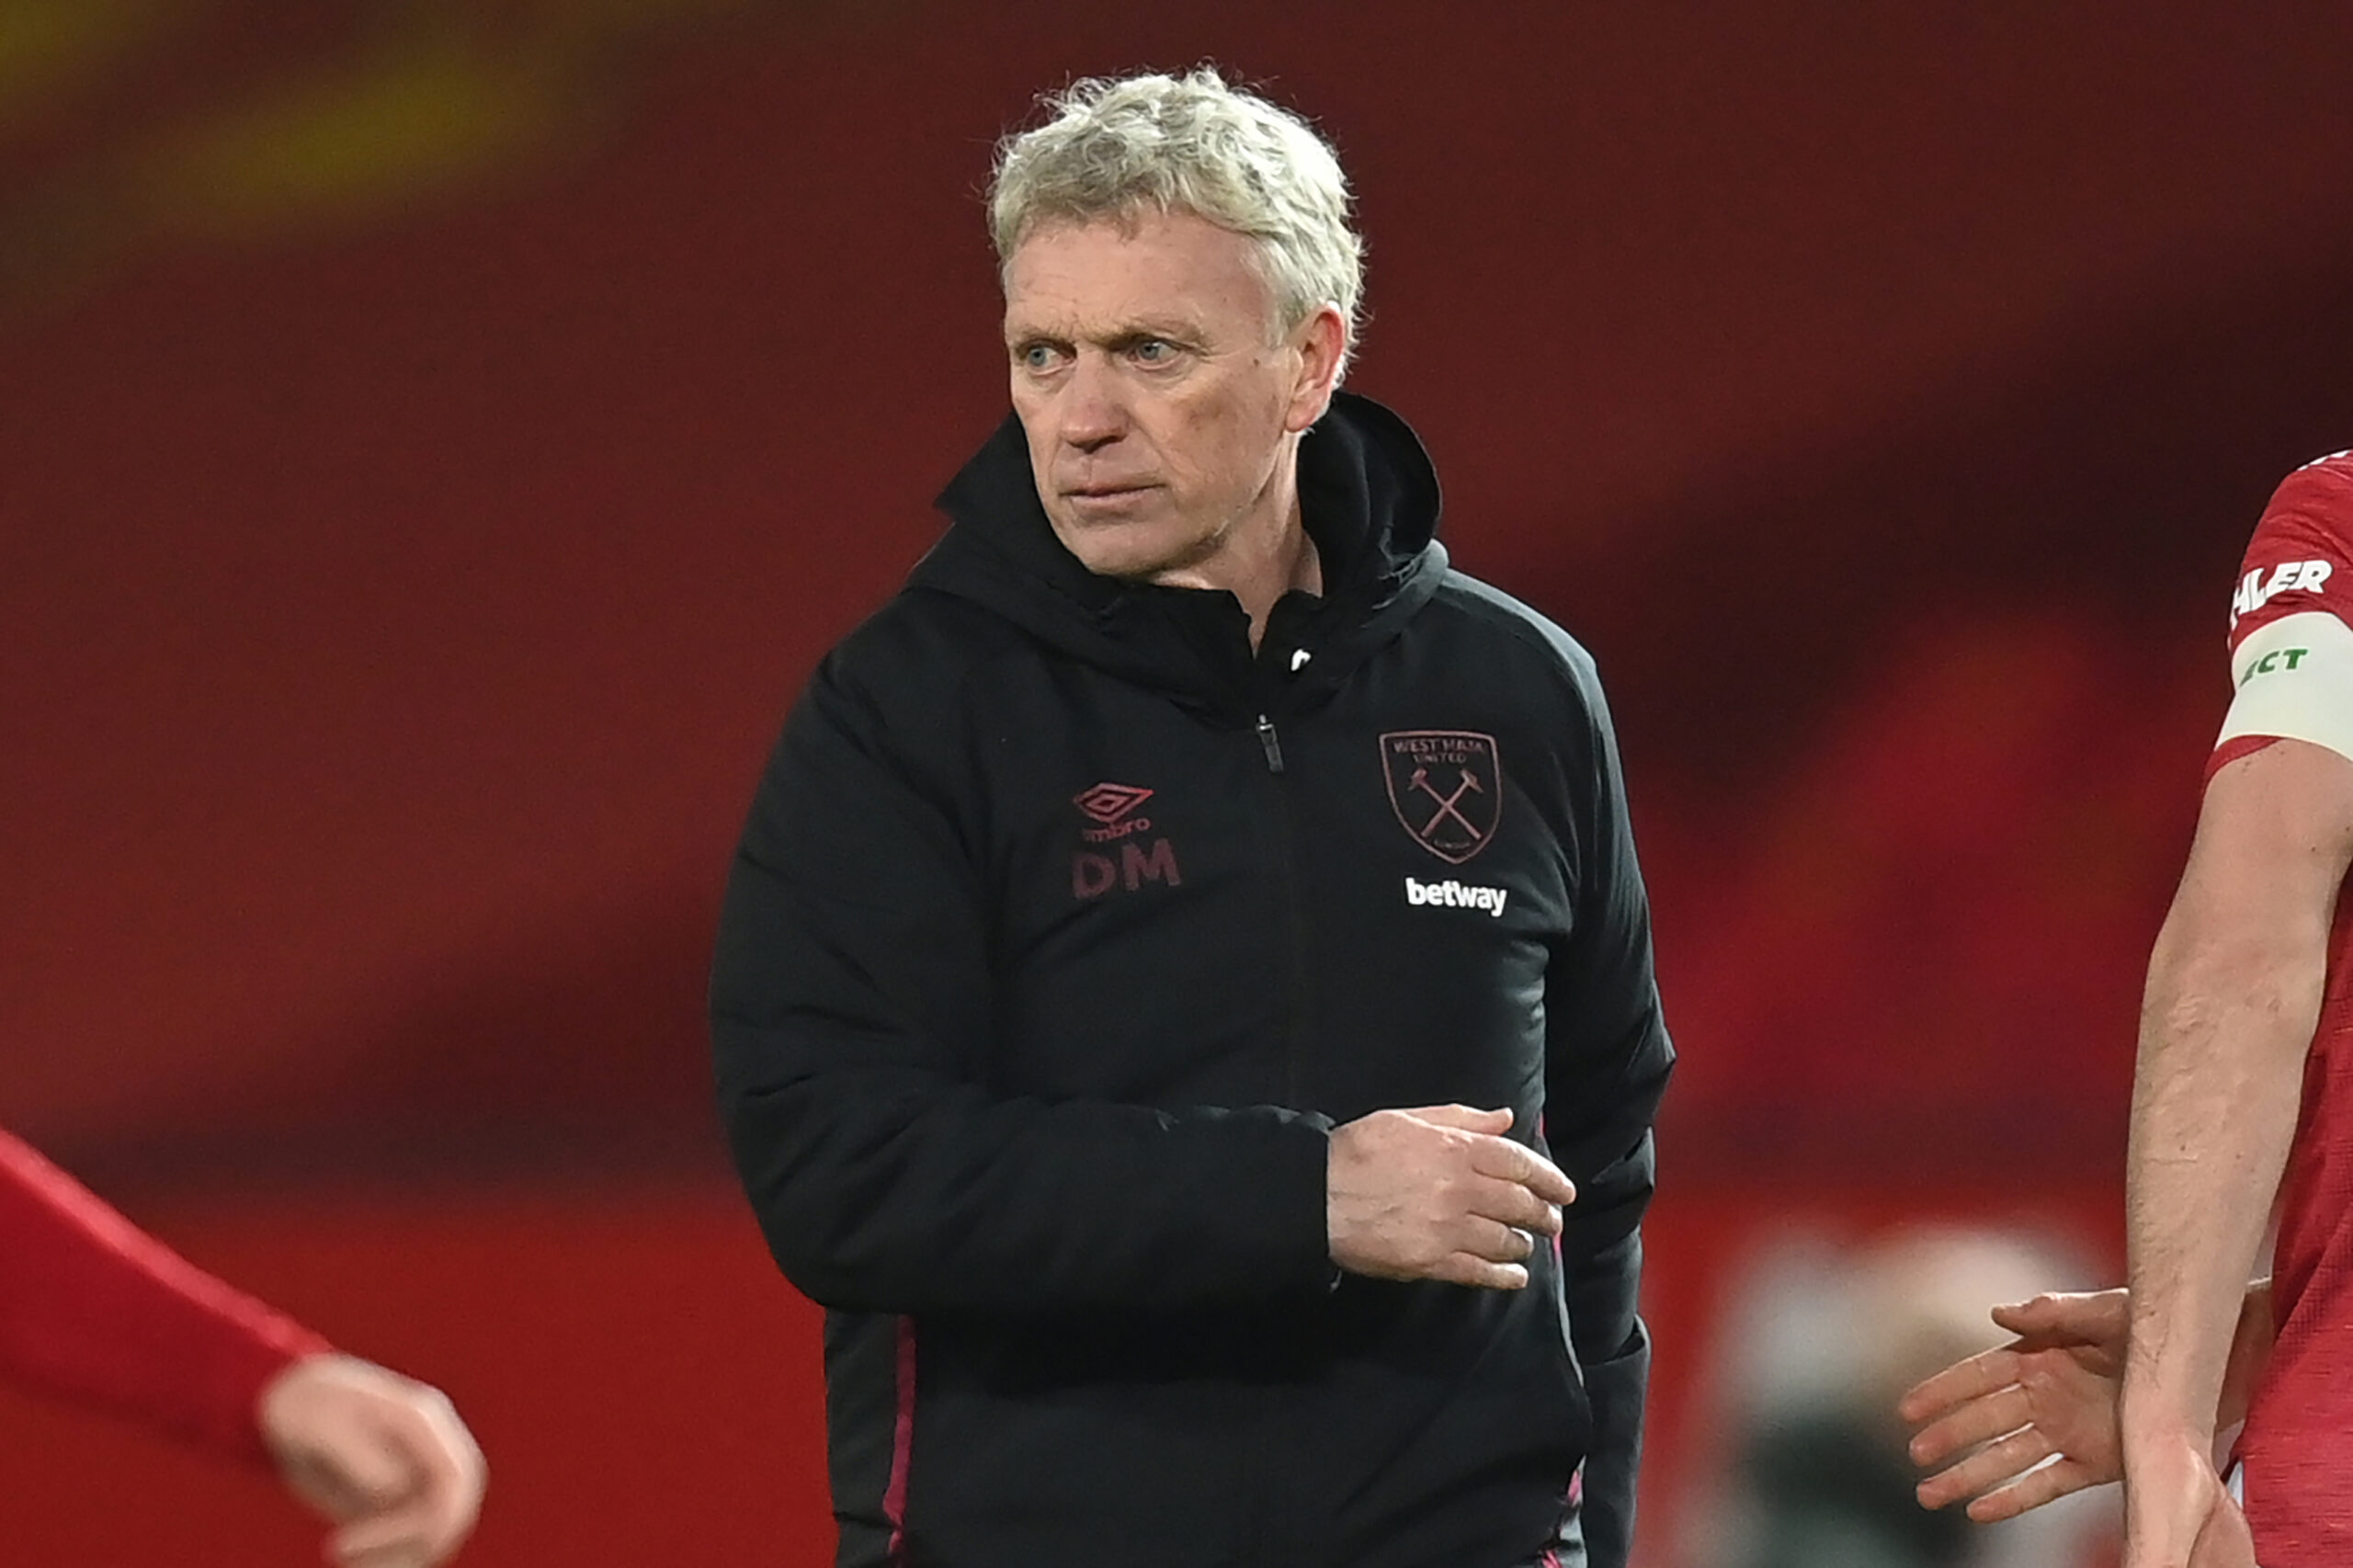 David Moyes and his path to redemption in East London